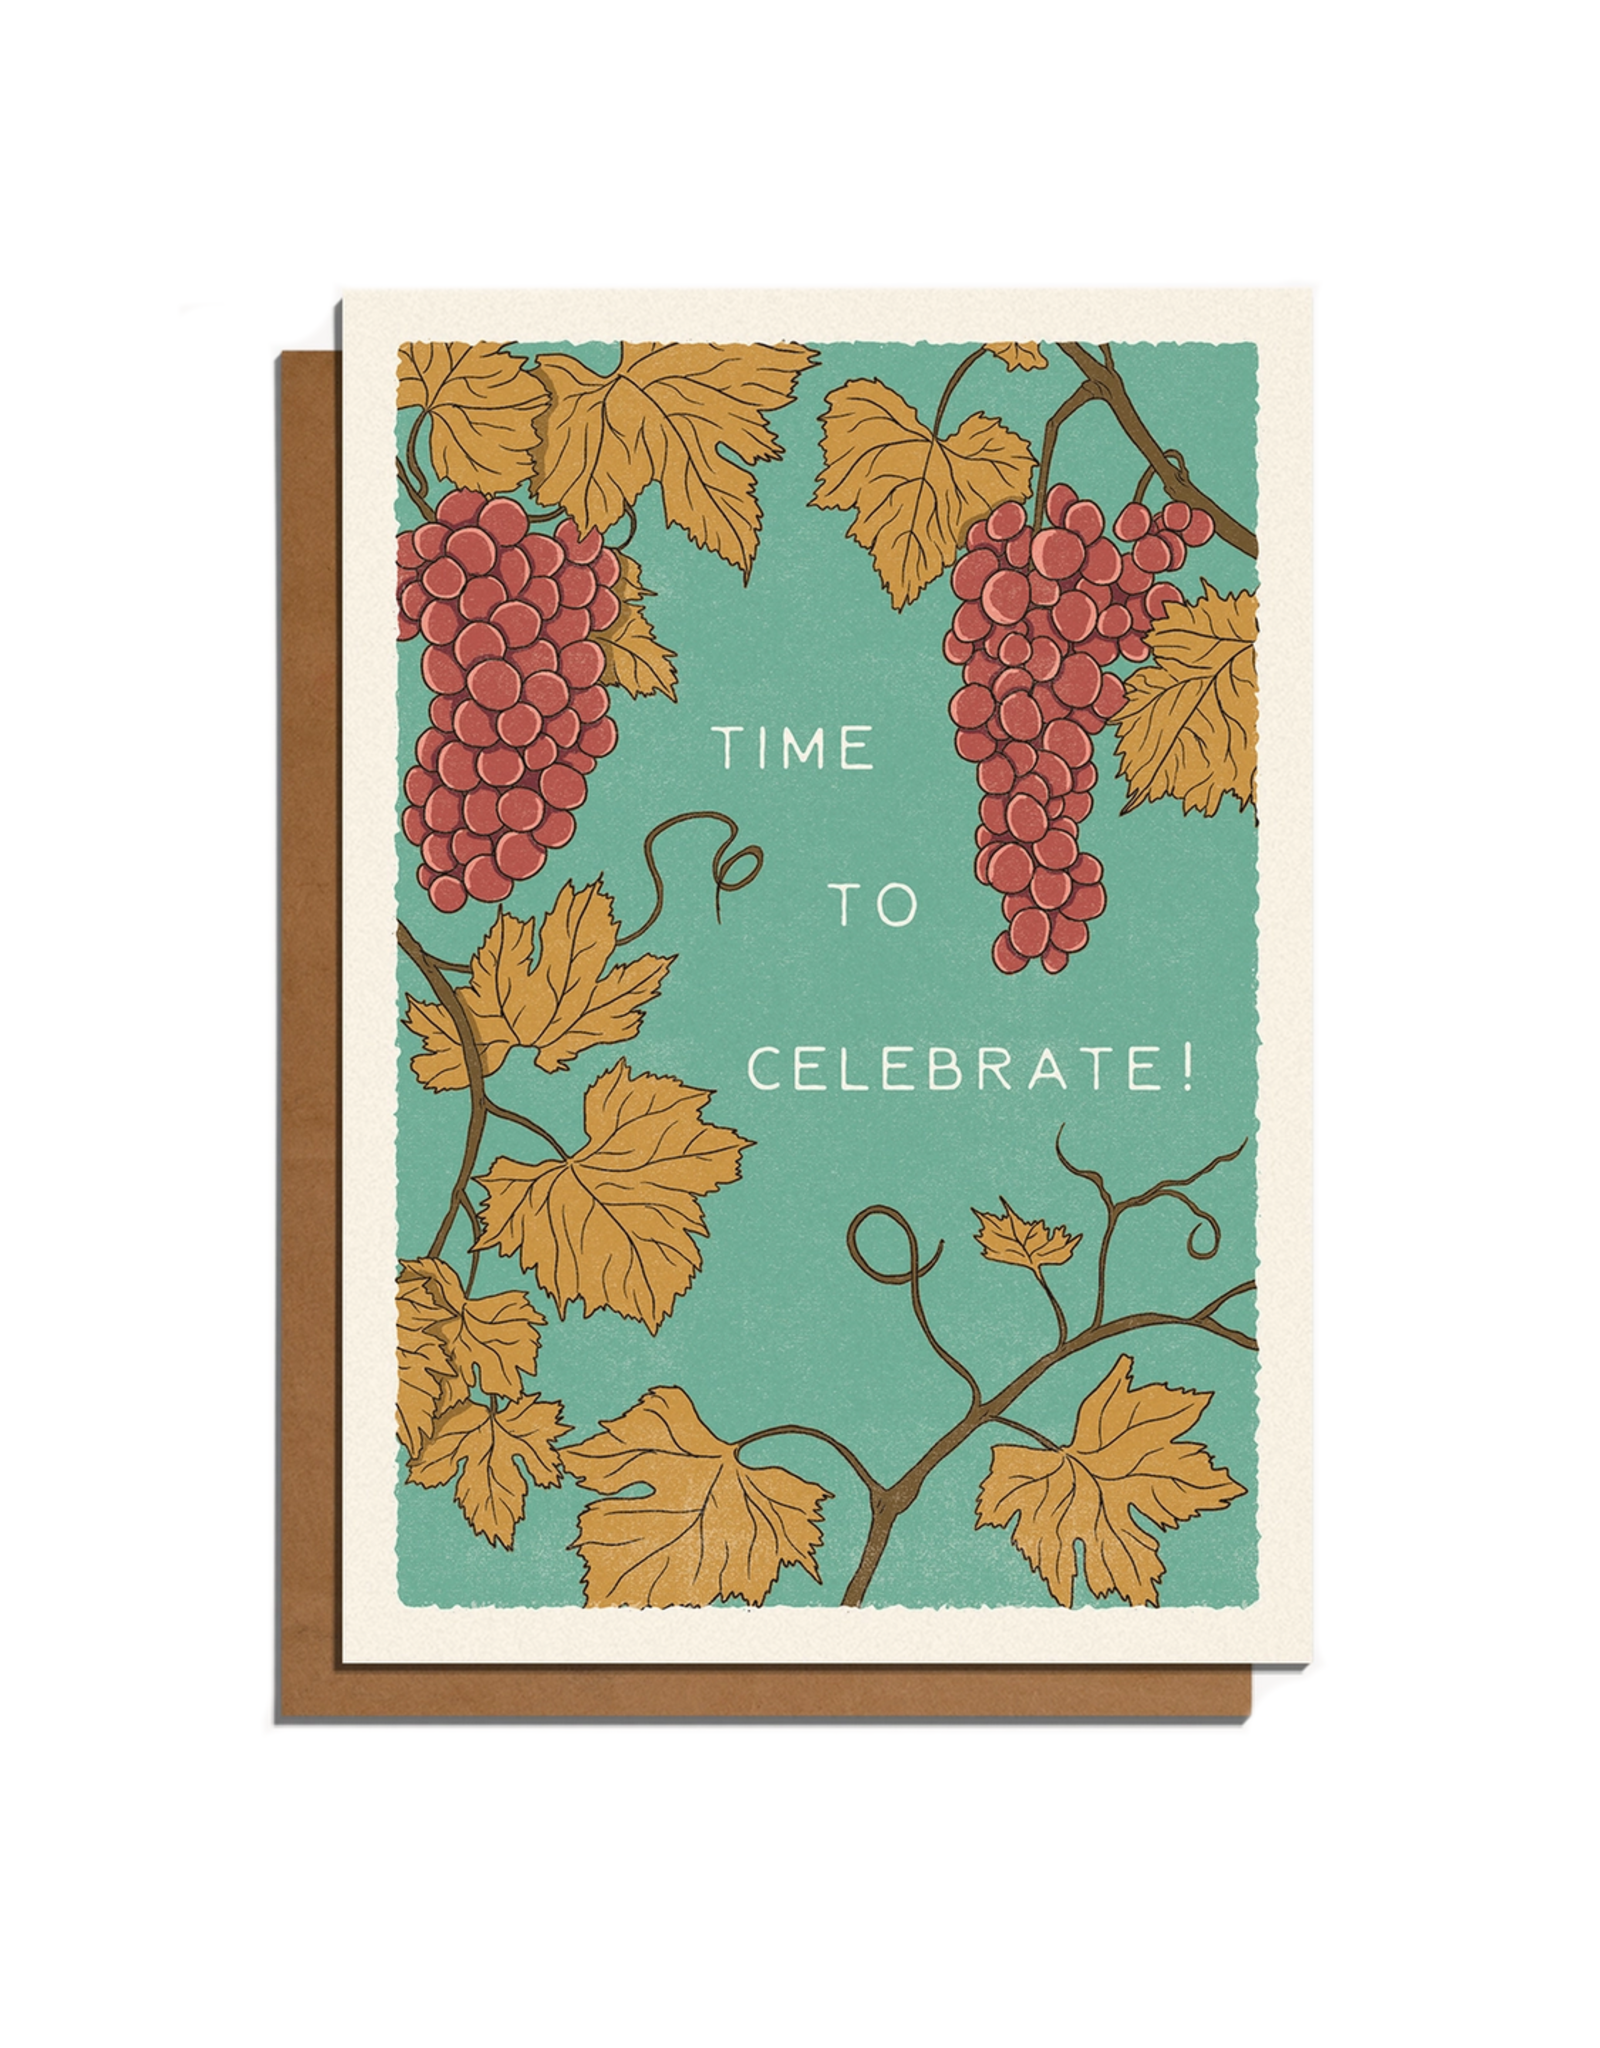 Time to Celebrate! Vines Greeting Card